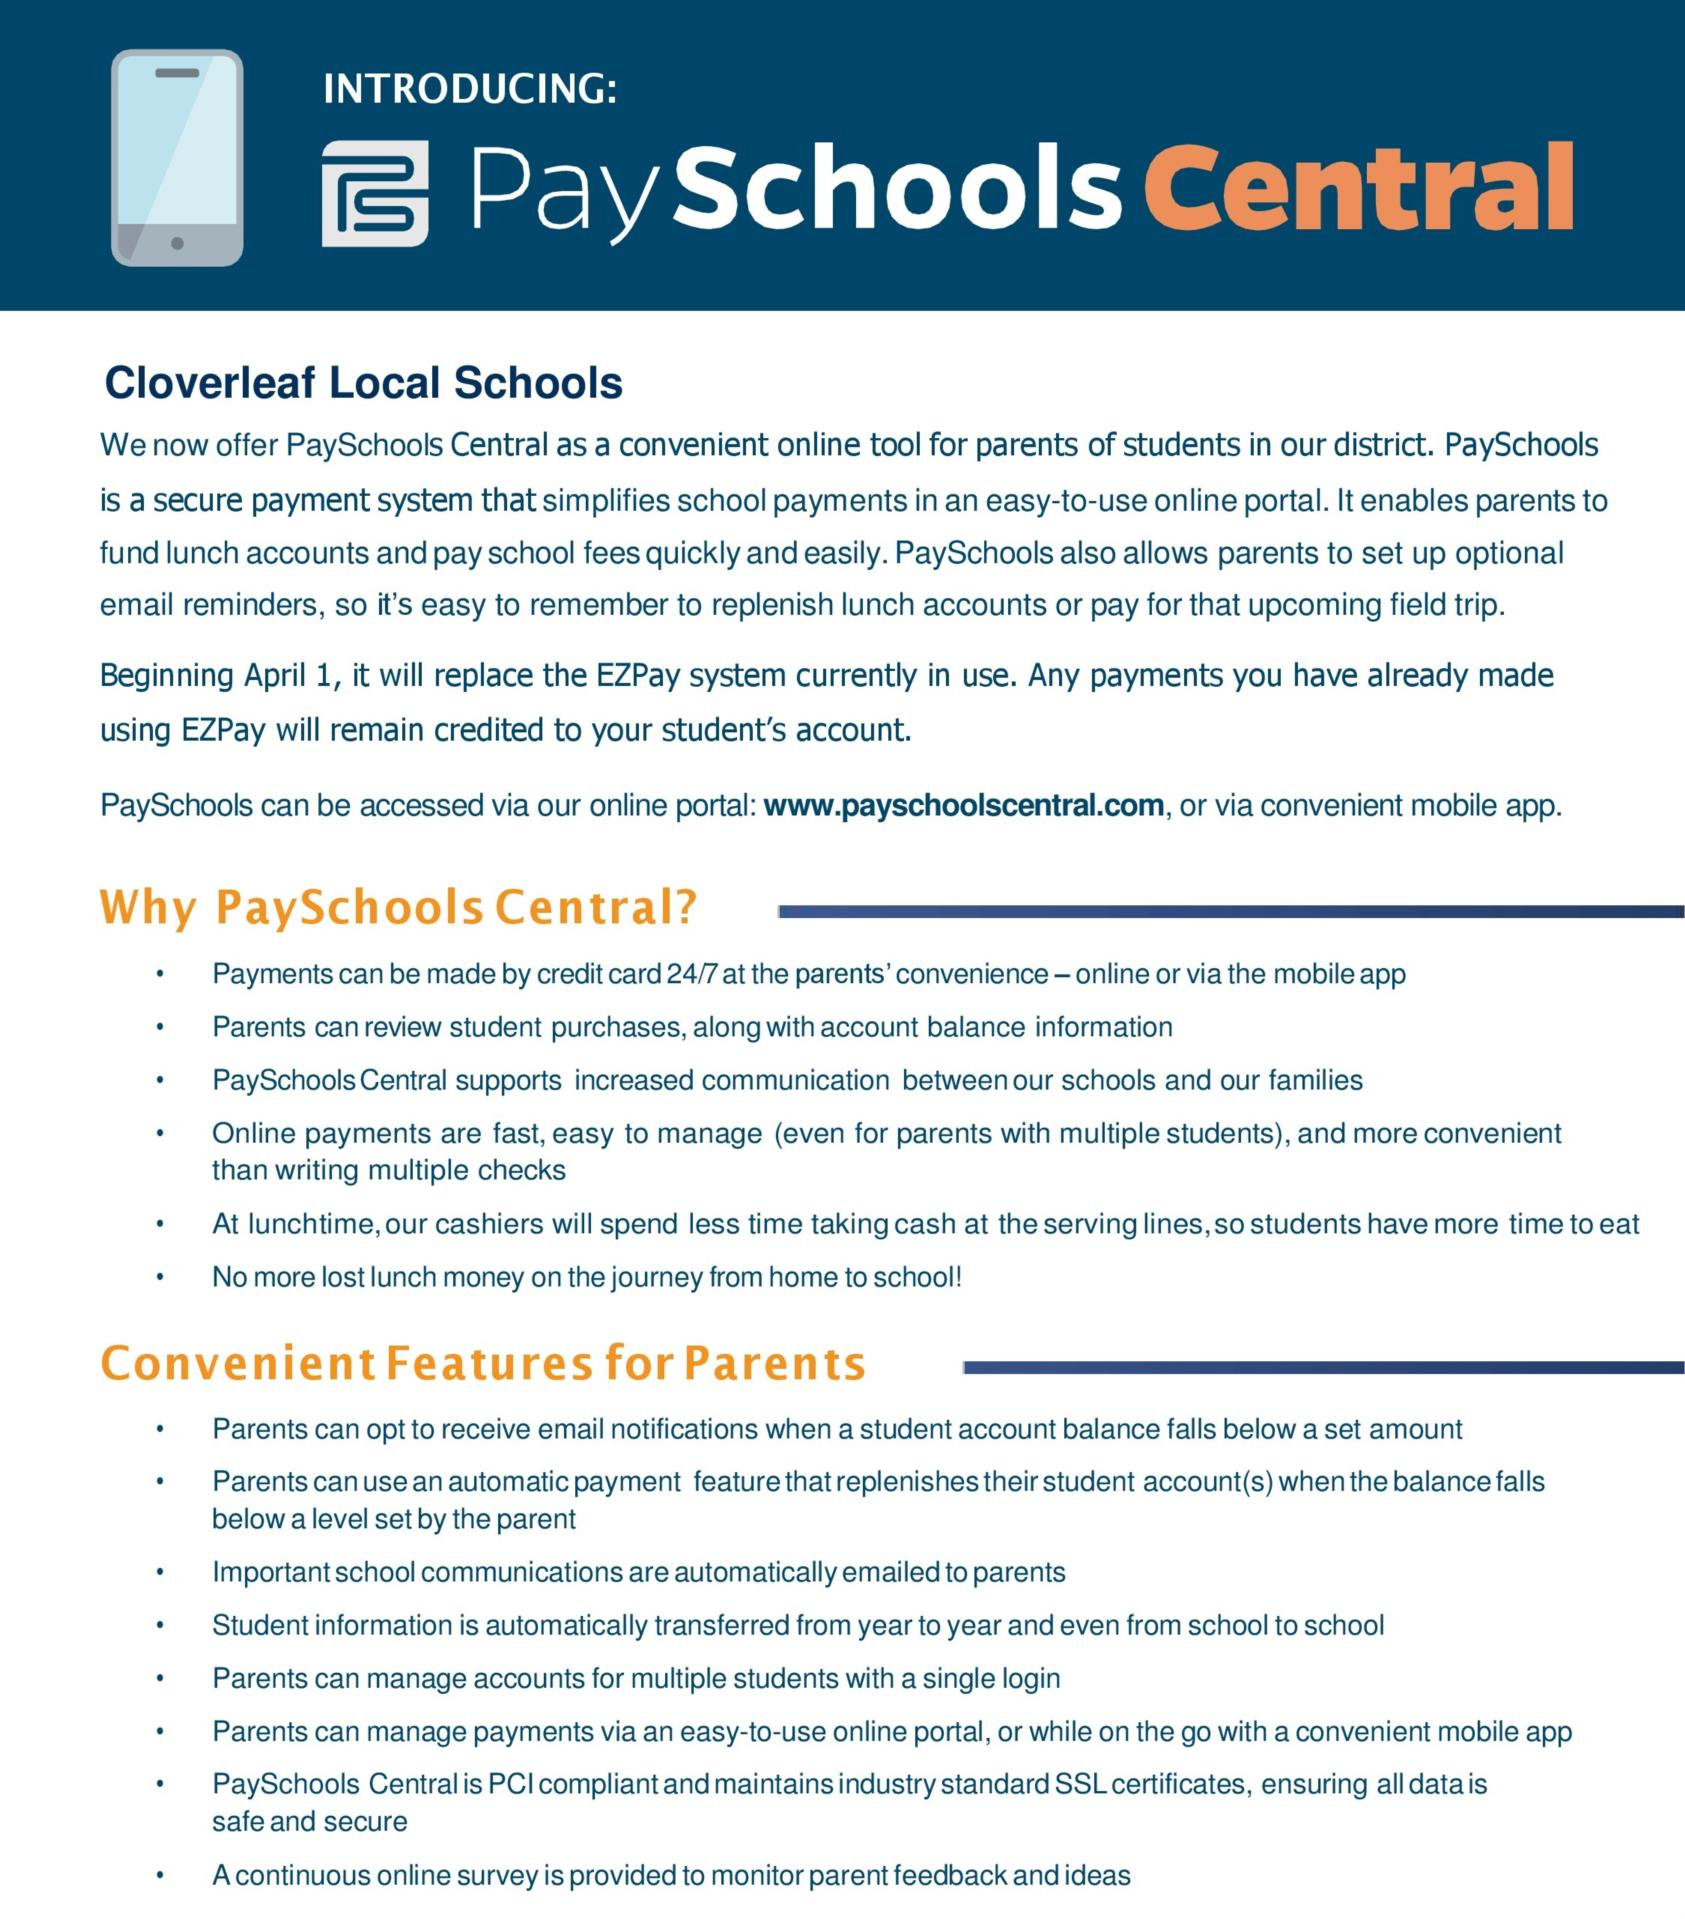 PaySchools Central Information